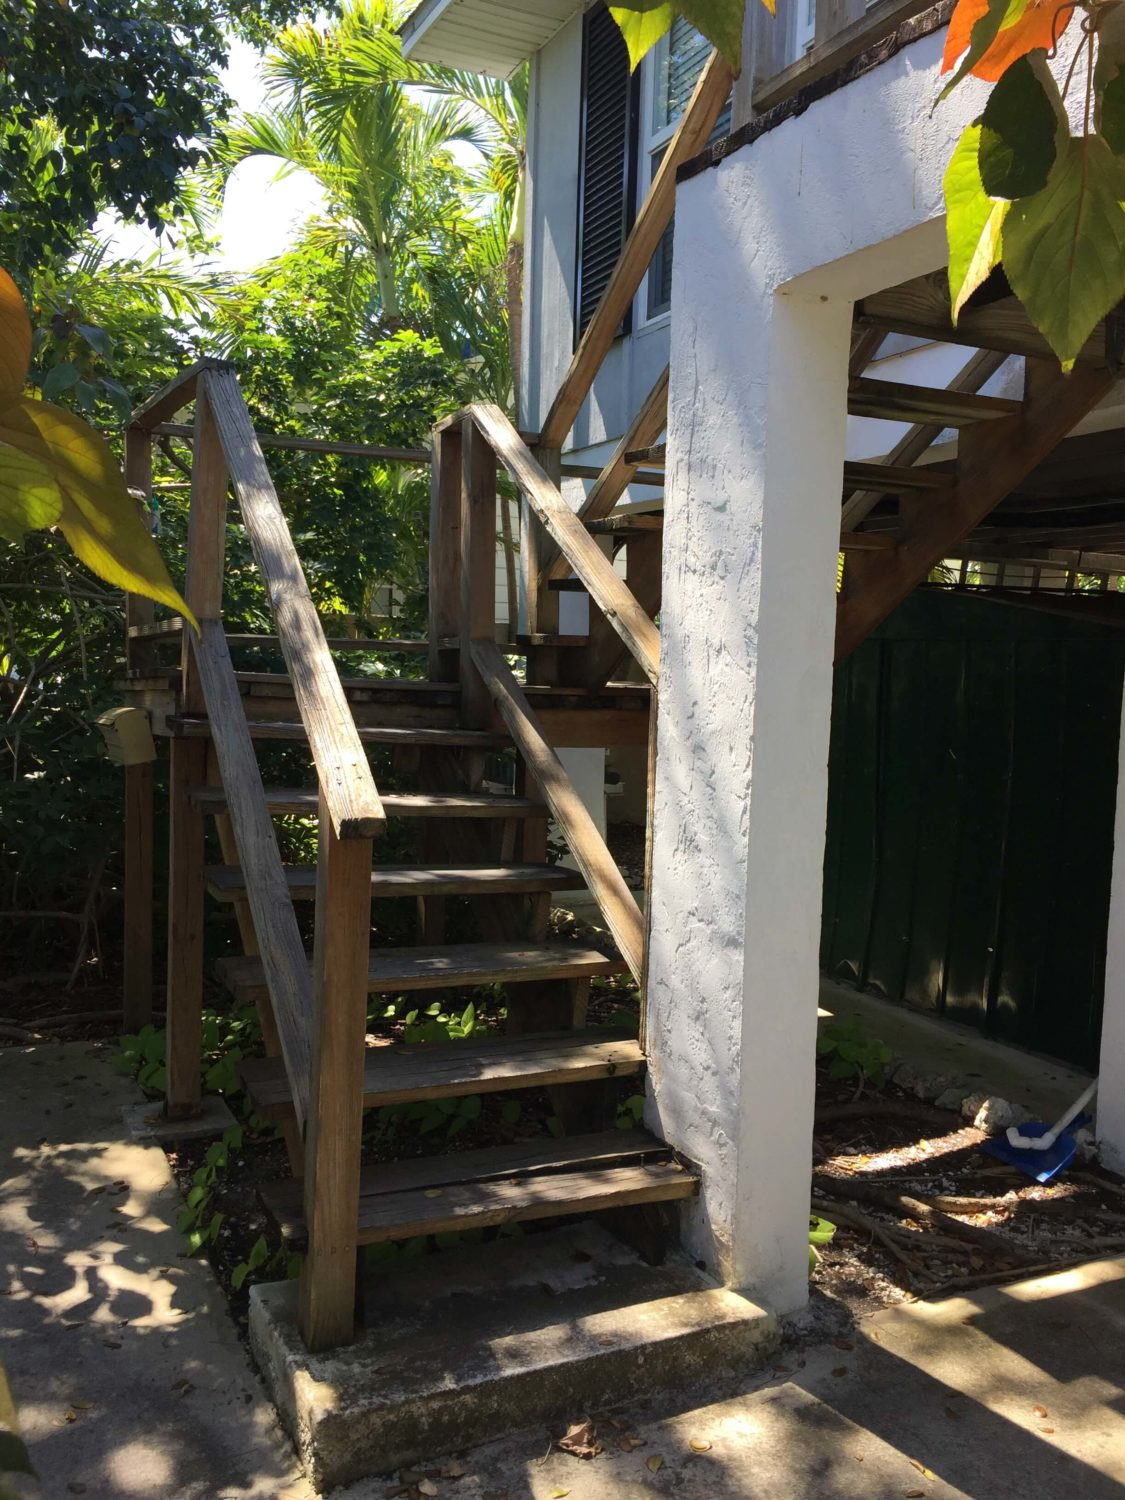 Stair Replacement Before Photo - Treads